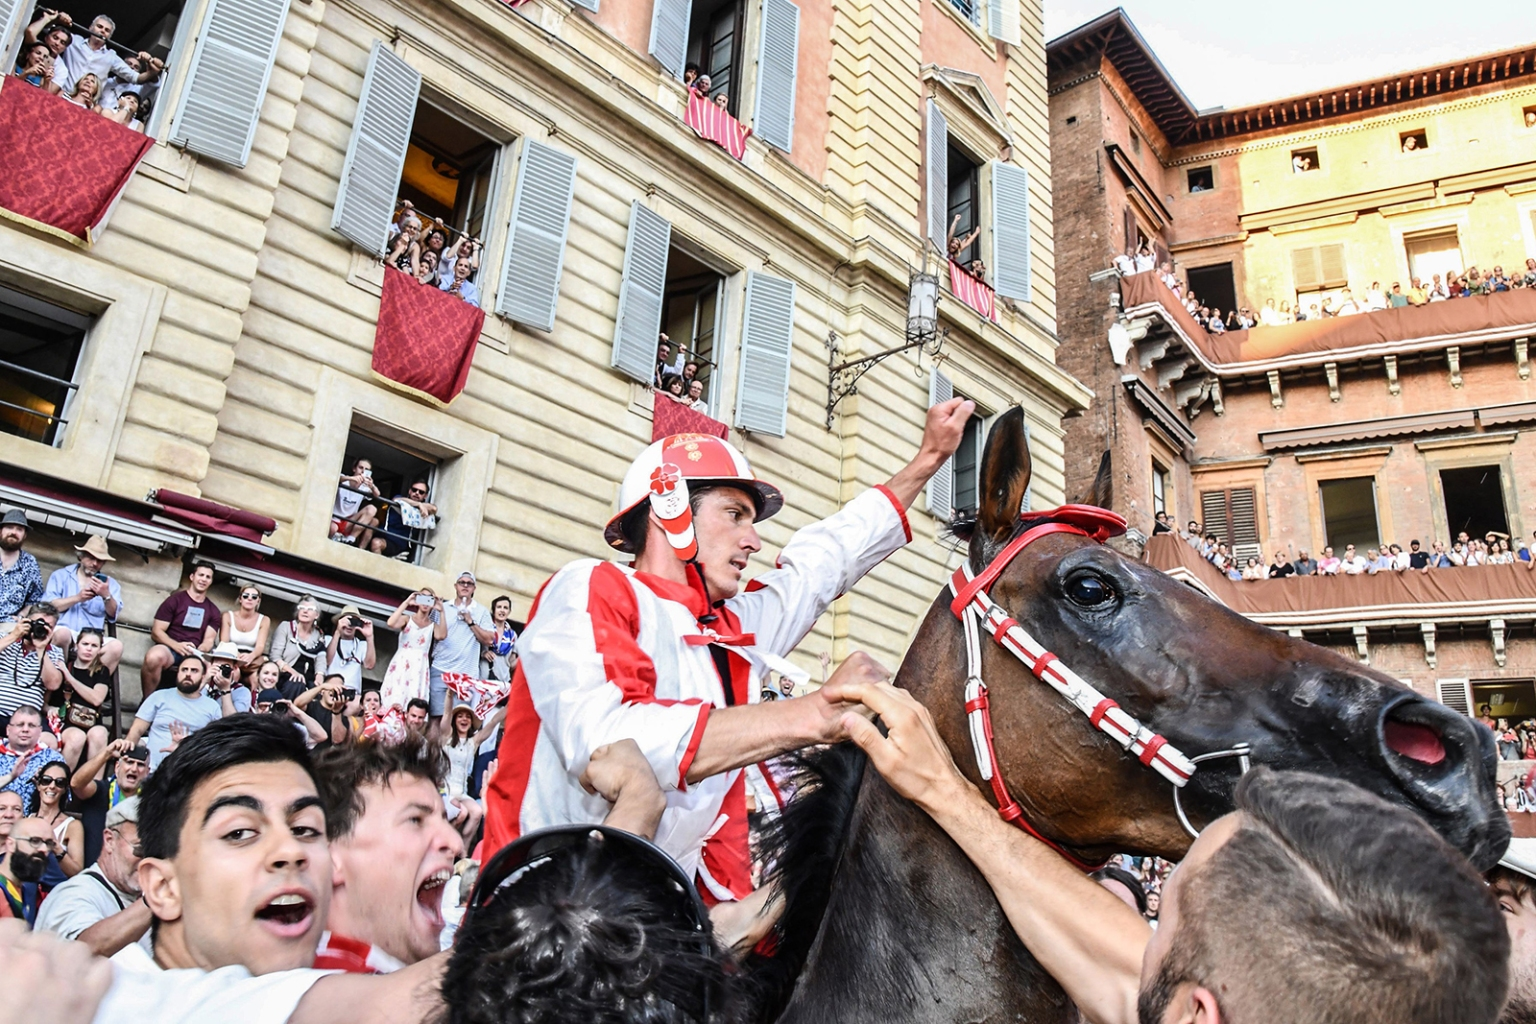 Jockey Giovanni Atzeni celebrates after winning the Palio di Siena horse race in Siena, Italy, on July 2. The Palio di Siena is held twice each year with 10 horses and riders, who ride bareback dressed in the appropriate colors representing 10 of the 17 contrade, or city wards. CARLO BRESSAN/AFP/Getty Images